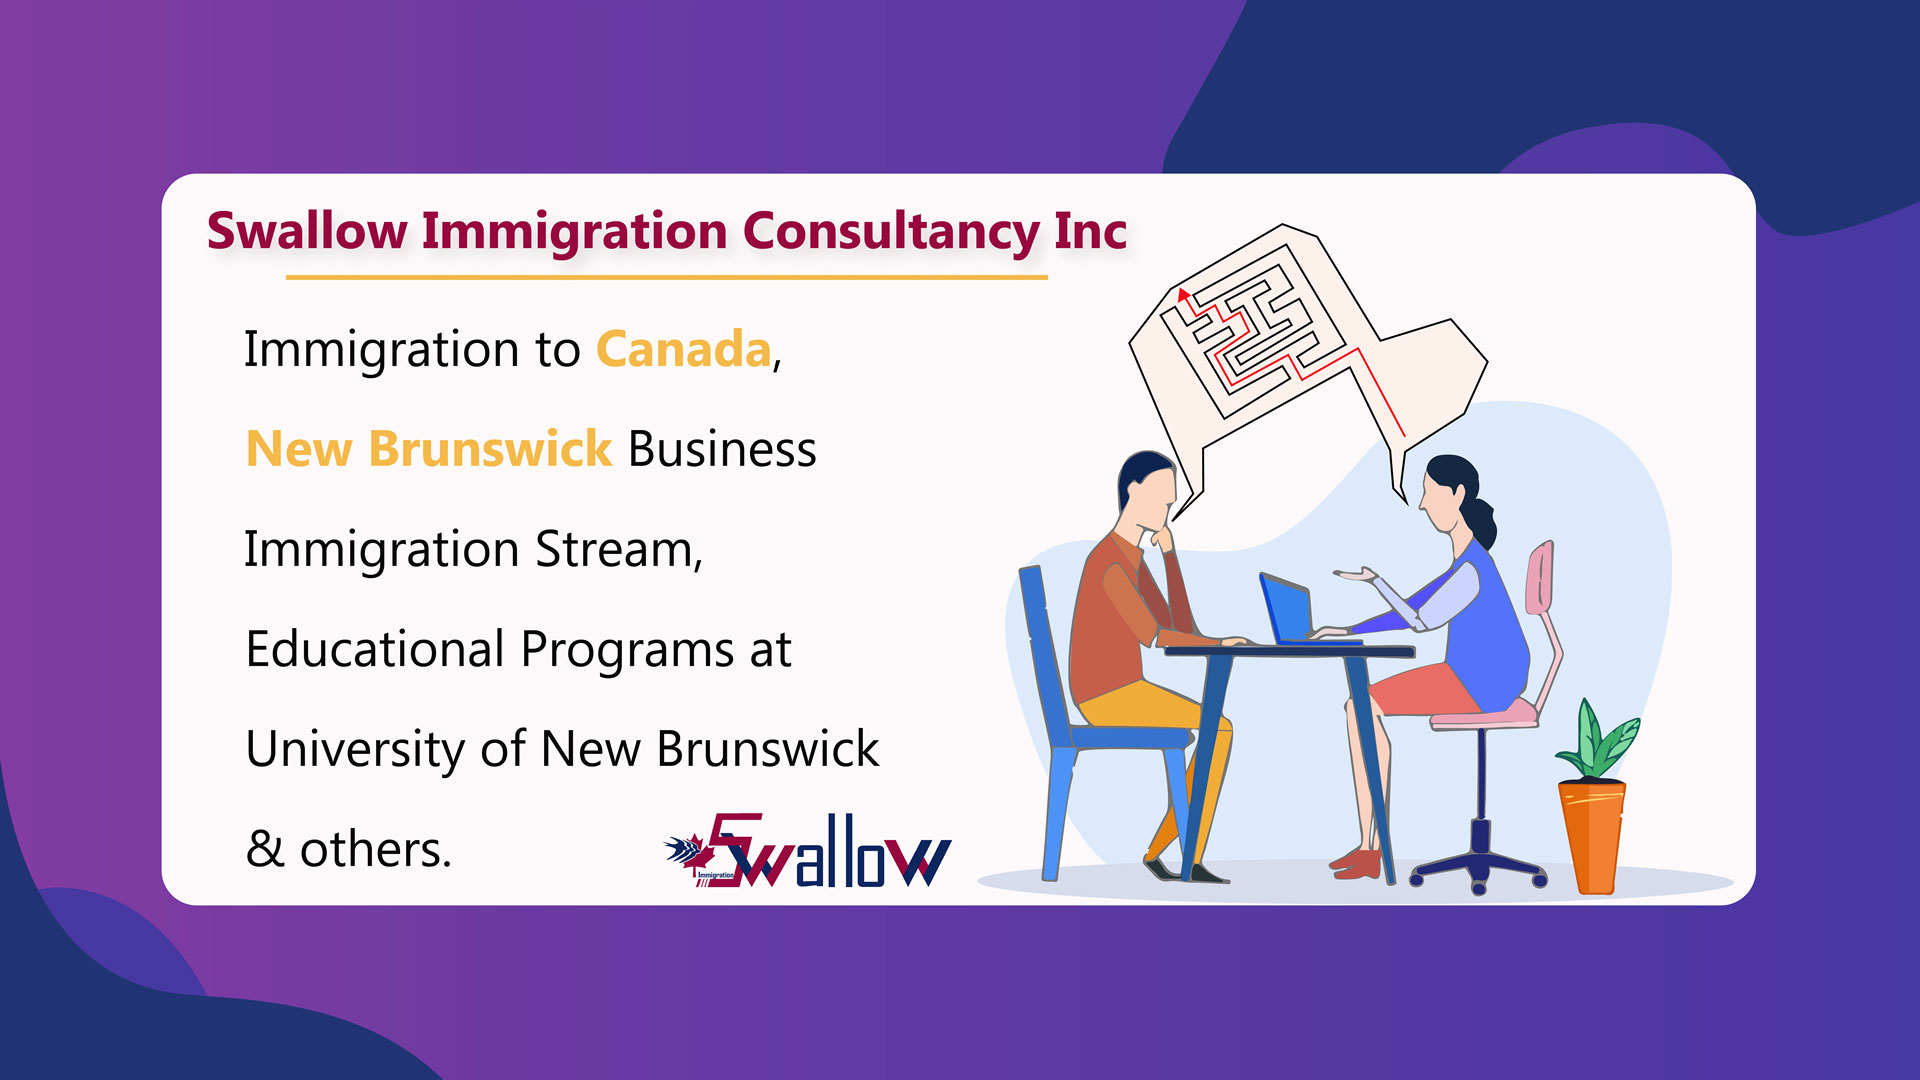 Swallow Immigration